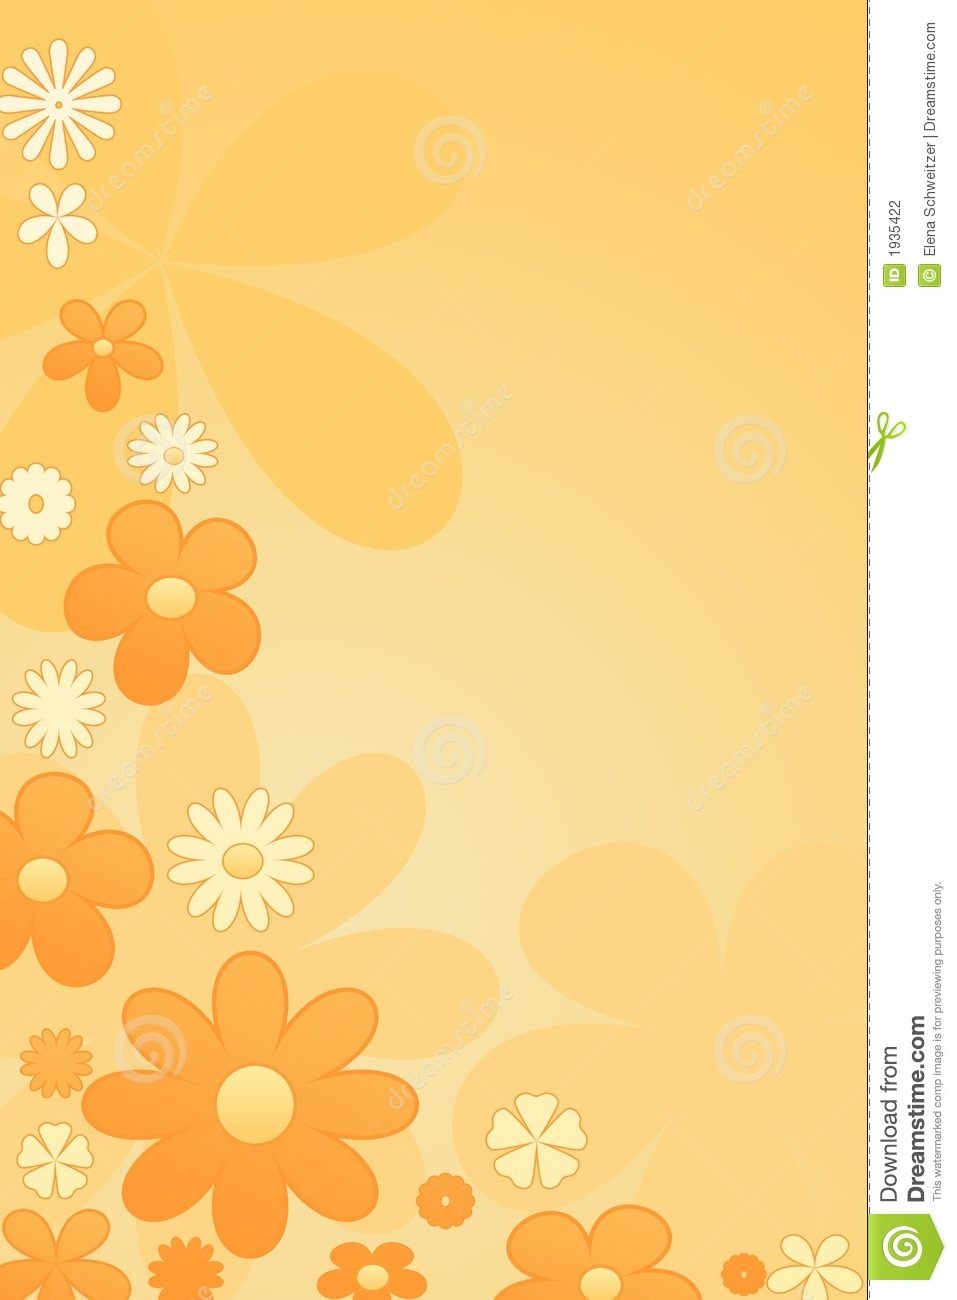 Rainy Nature Hd Wallpaper Colour Flowers Background Stock Photography Image 1935422